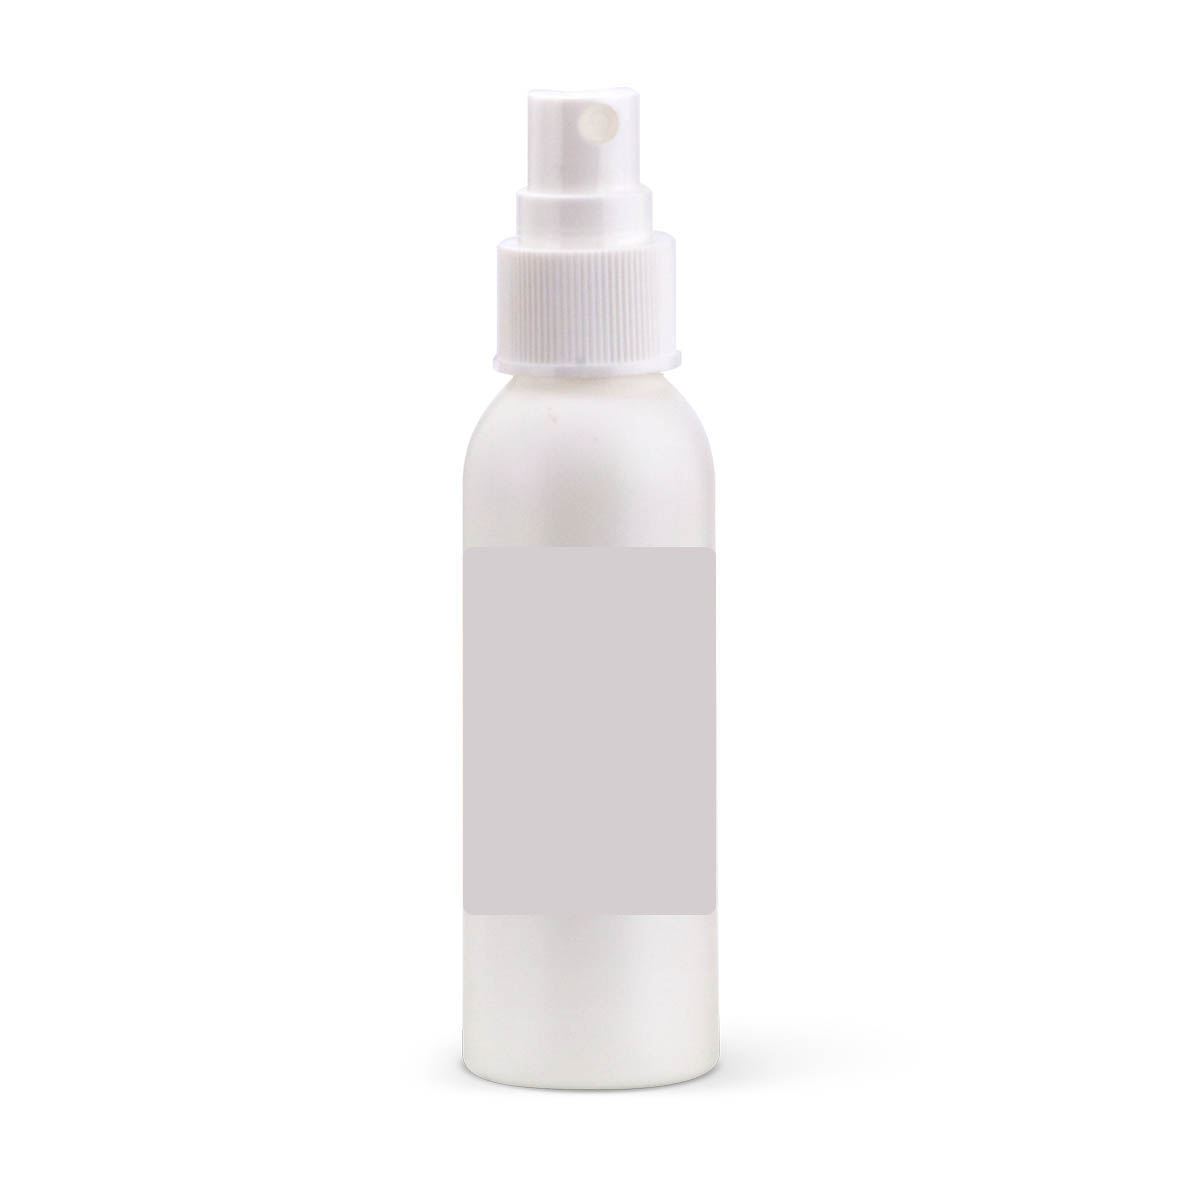 White Insect Repellent Spray - 2 Oz